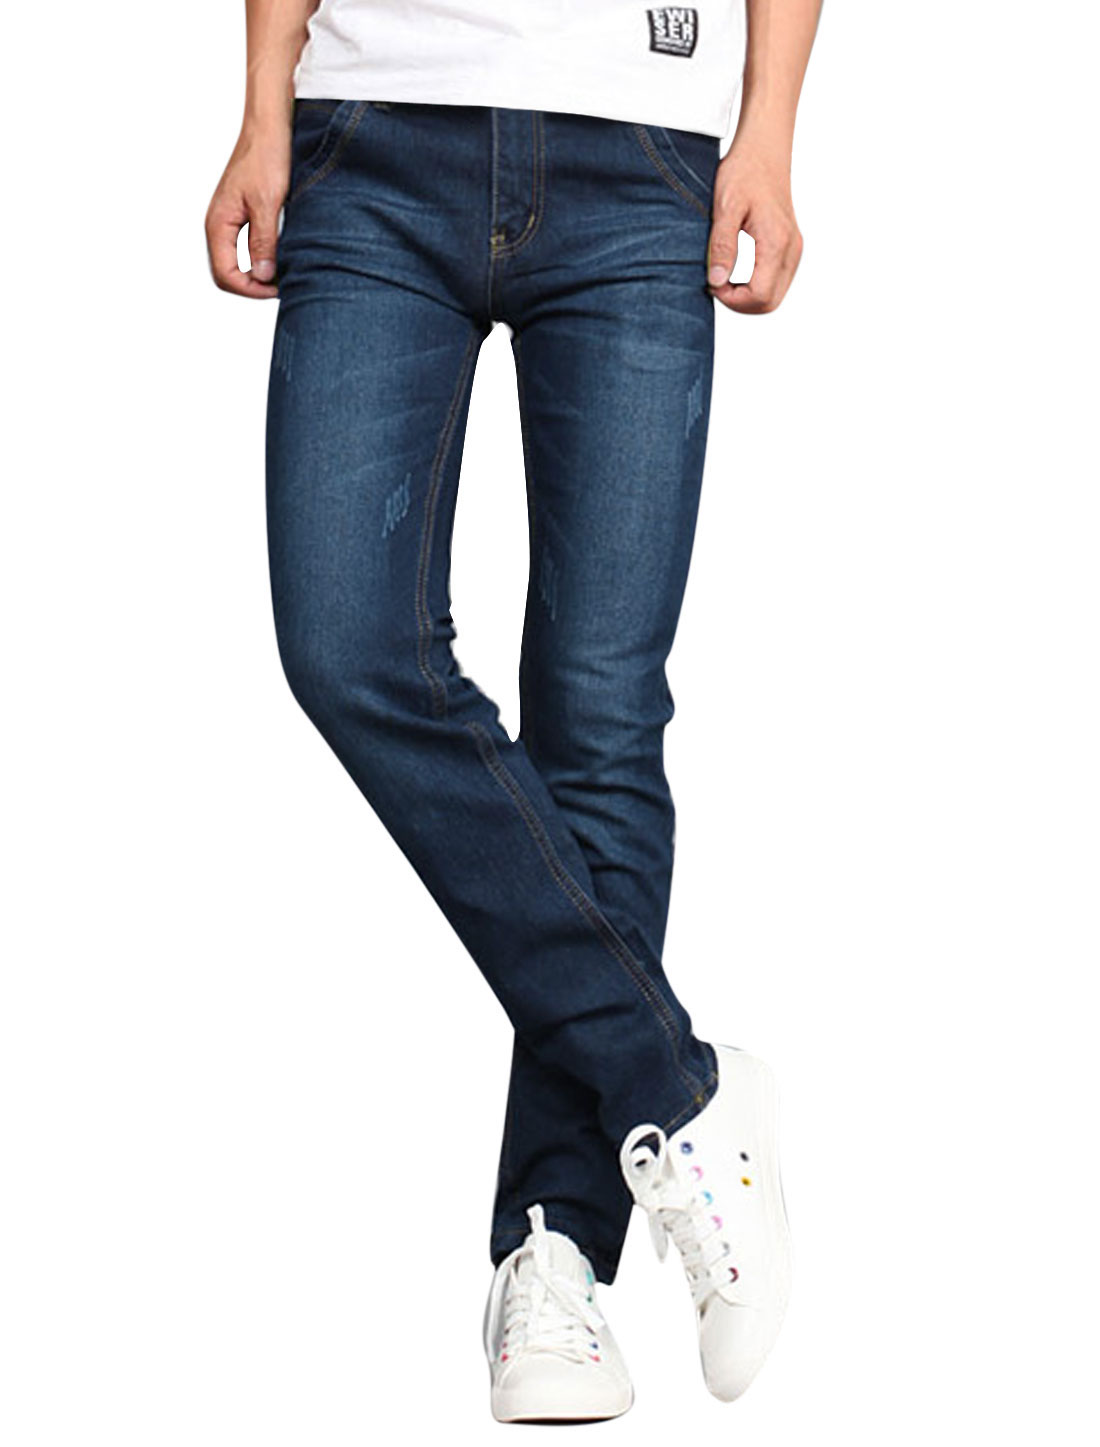 Men Zip Fly Button Closure Pockets Leisure Tapered Jeans Navy Blue W32